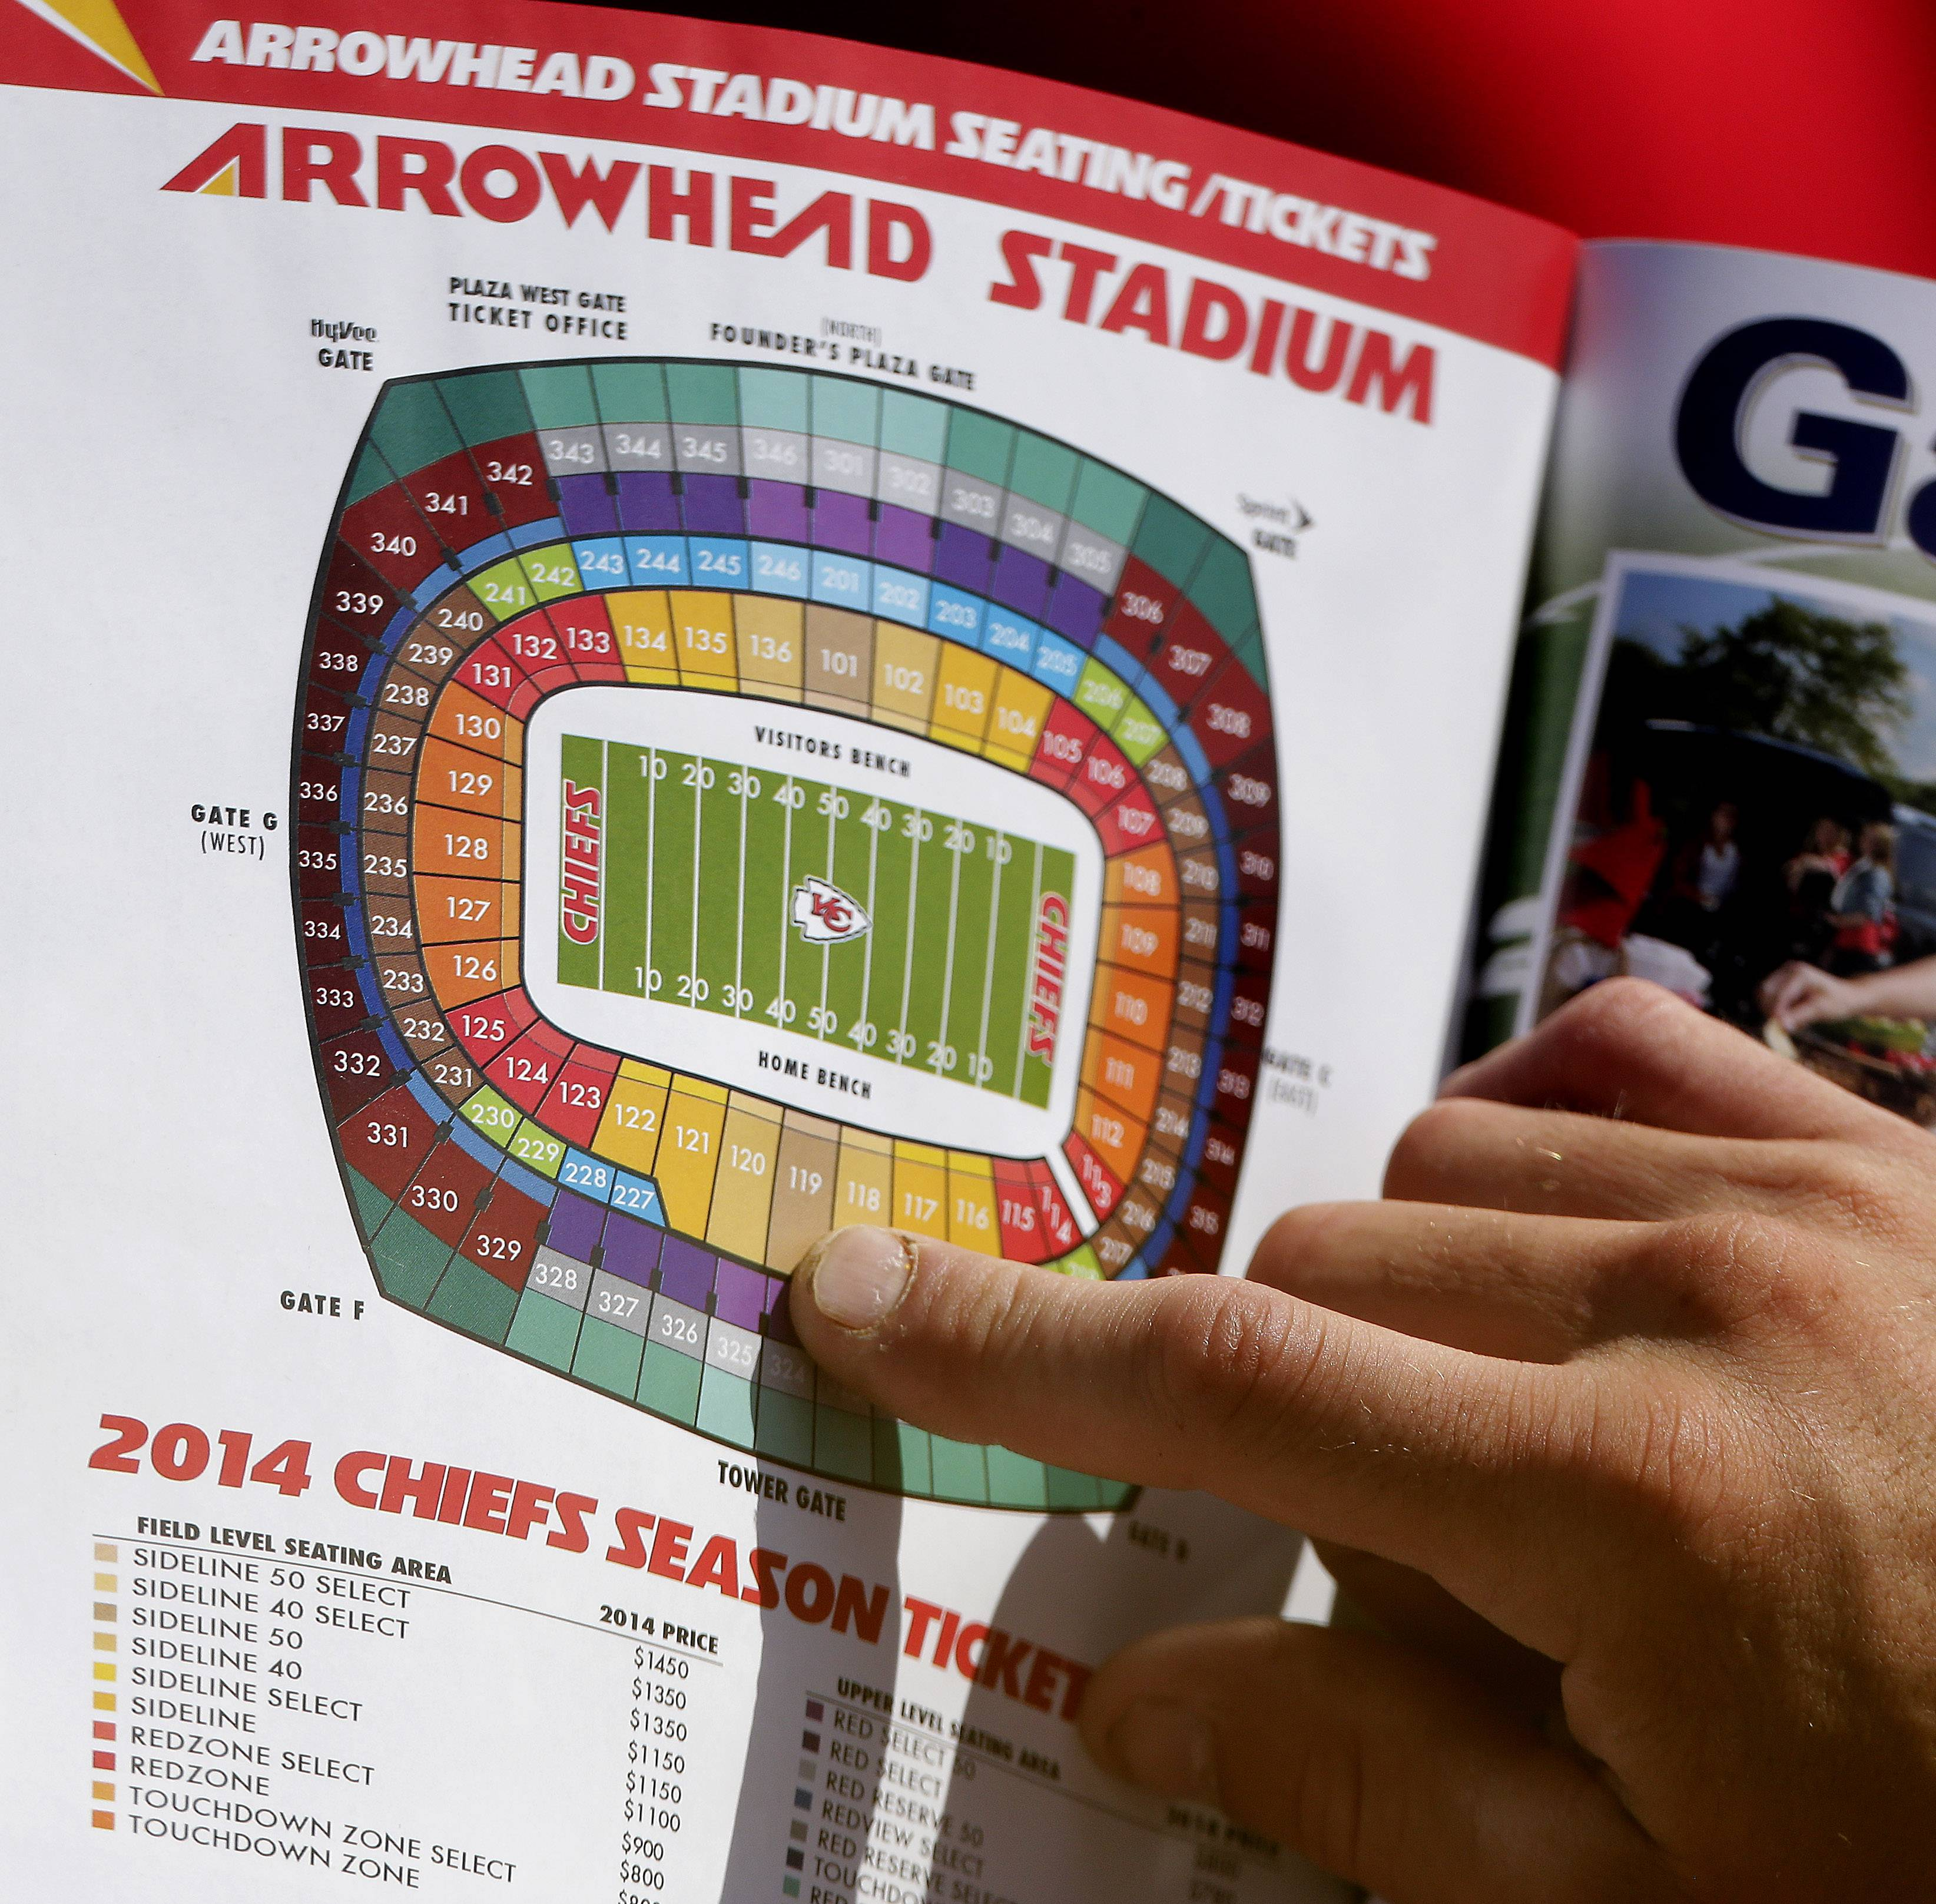 A fan looks at a season ticket seating map during NFL football practice at the Kansas City Chiefs' training camp in St. Joseph, Mo. By making fans feel as though they're part of the team and offering gifts and experiences exclusive to members, the Chiefs have managed to expand their season ticket sales at a time when many franchises are having a hard time filling their stadiums.